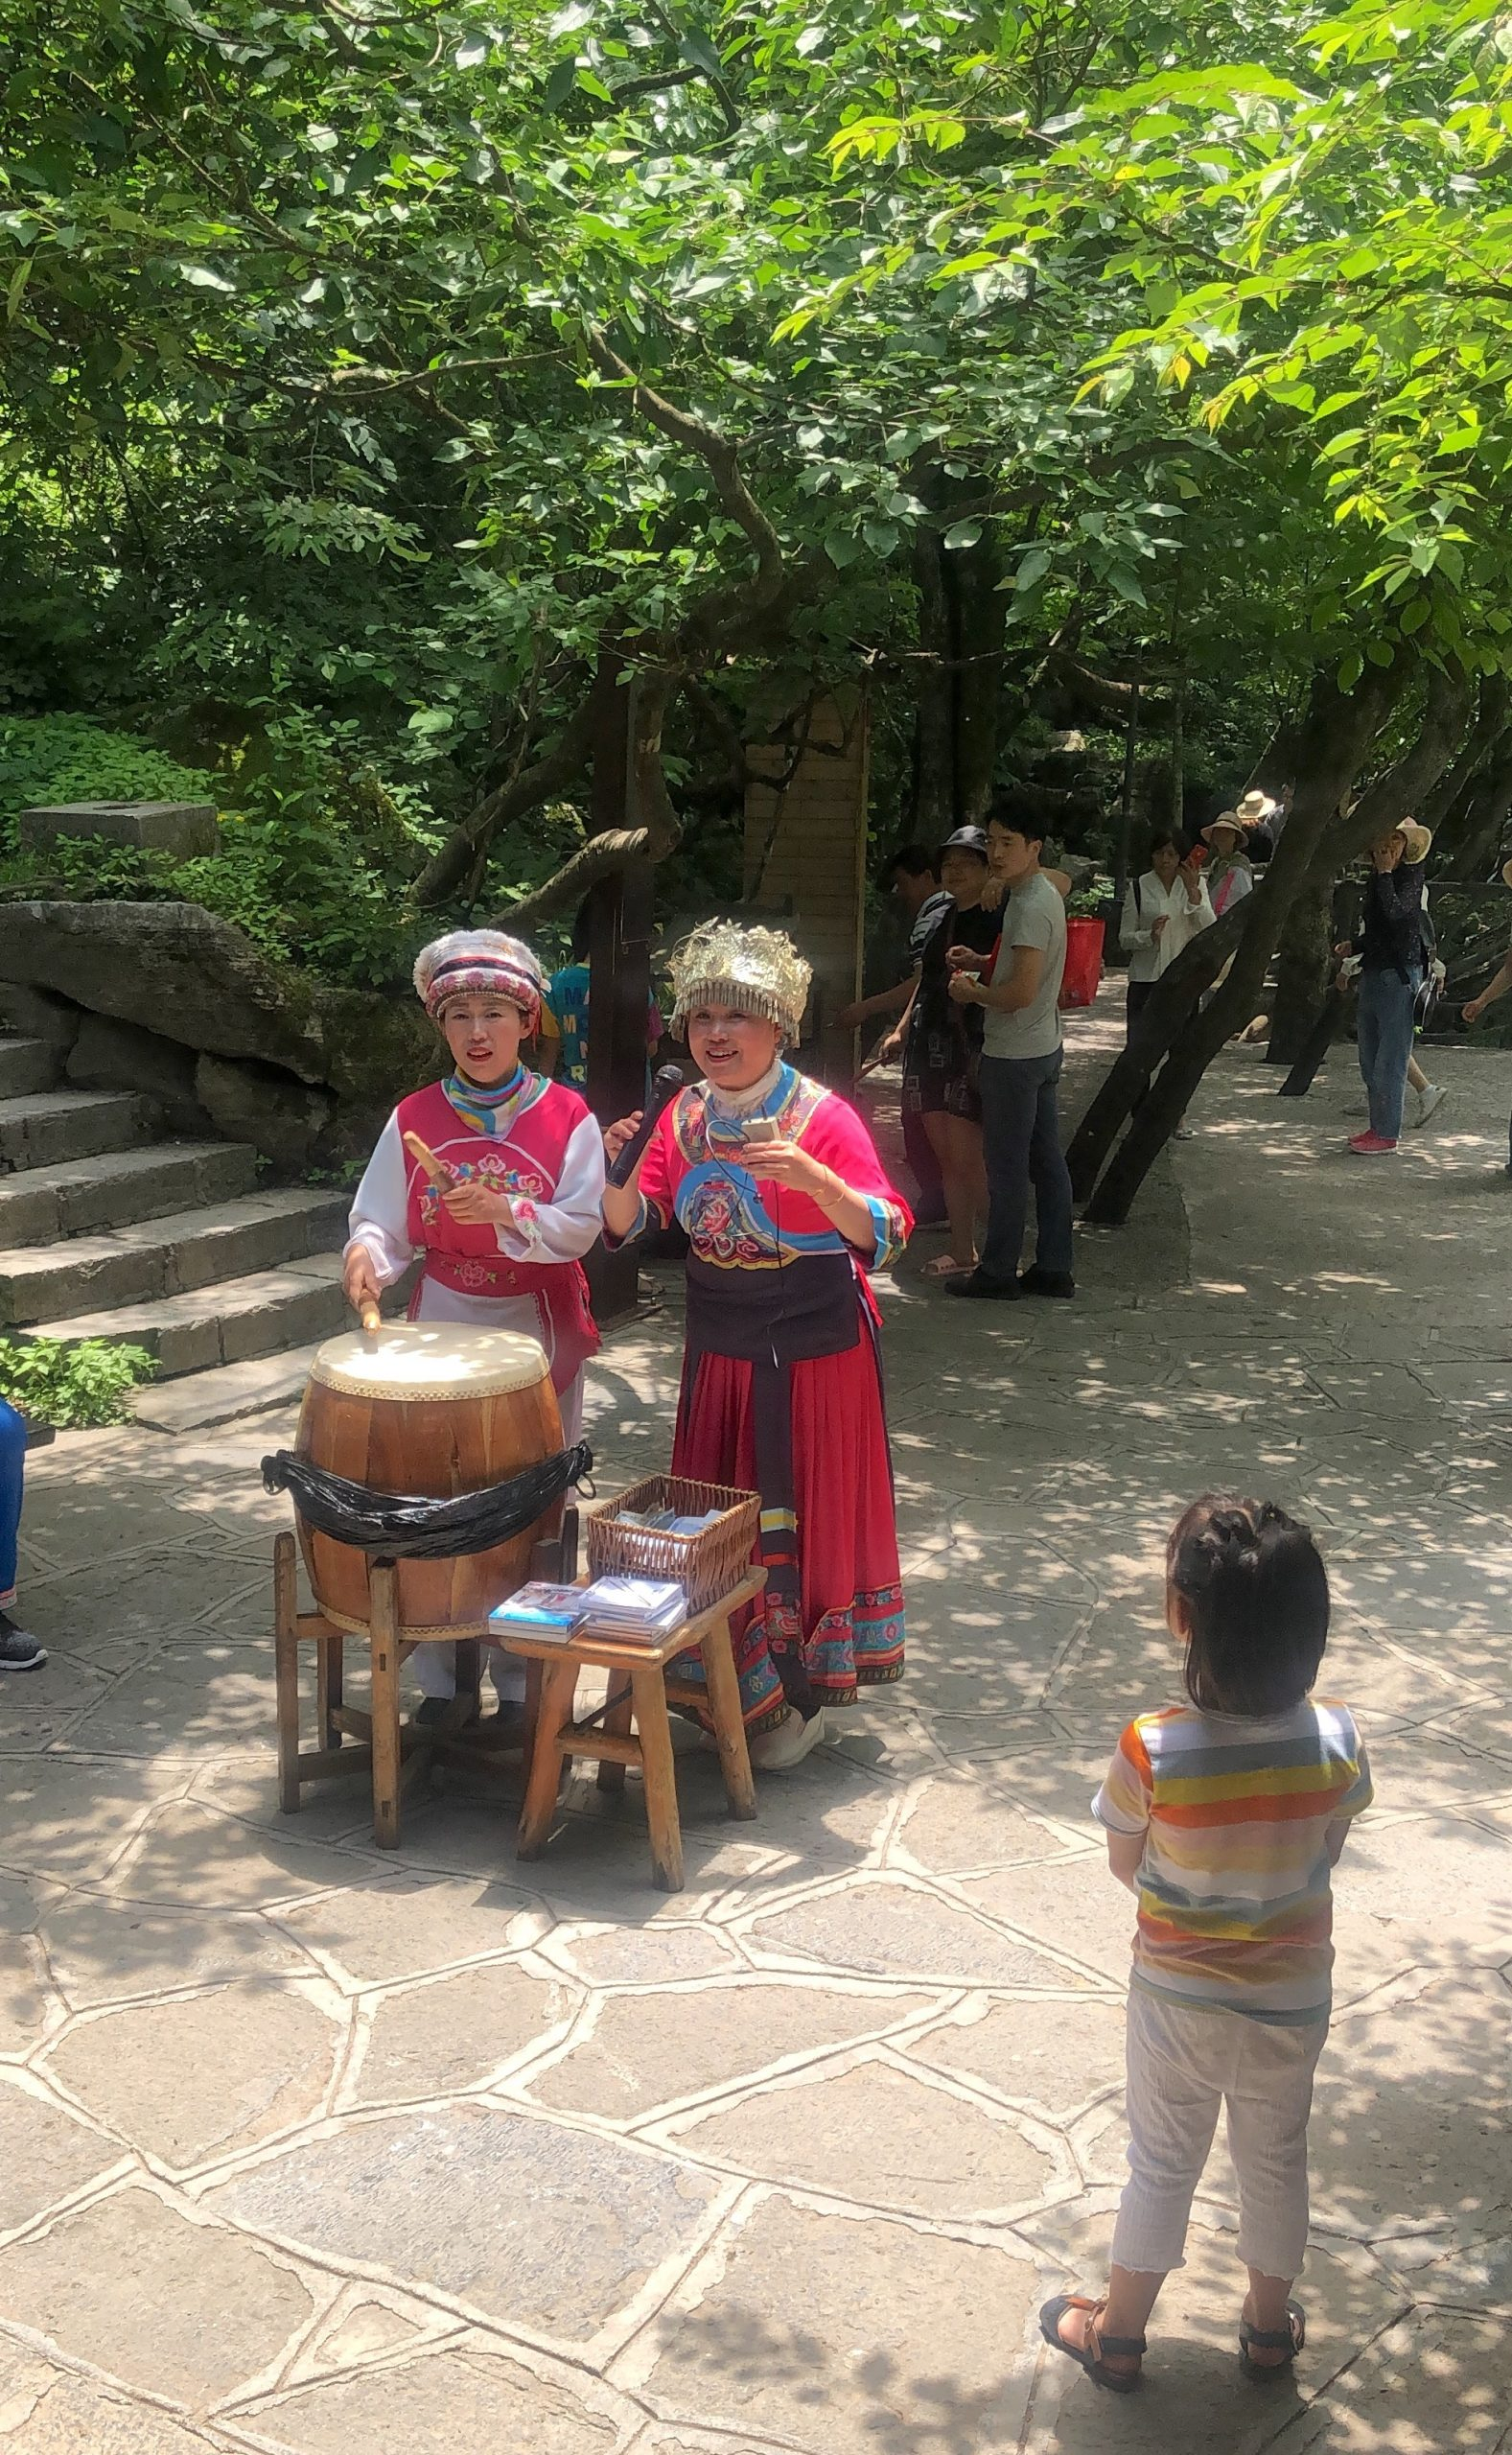 People performing in a park